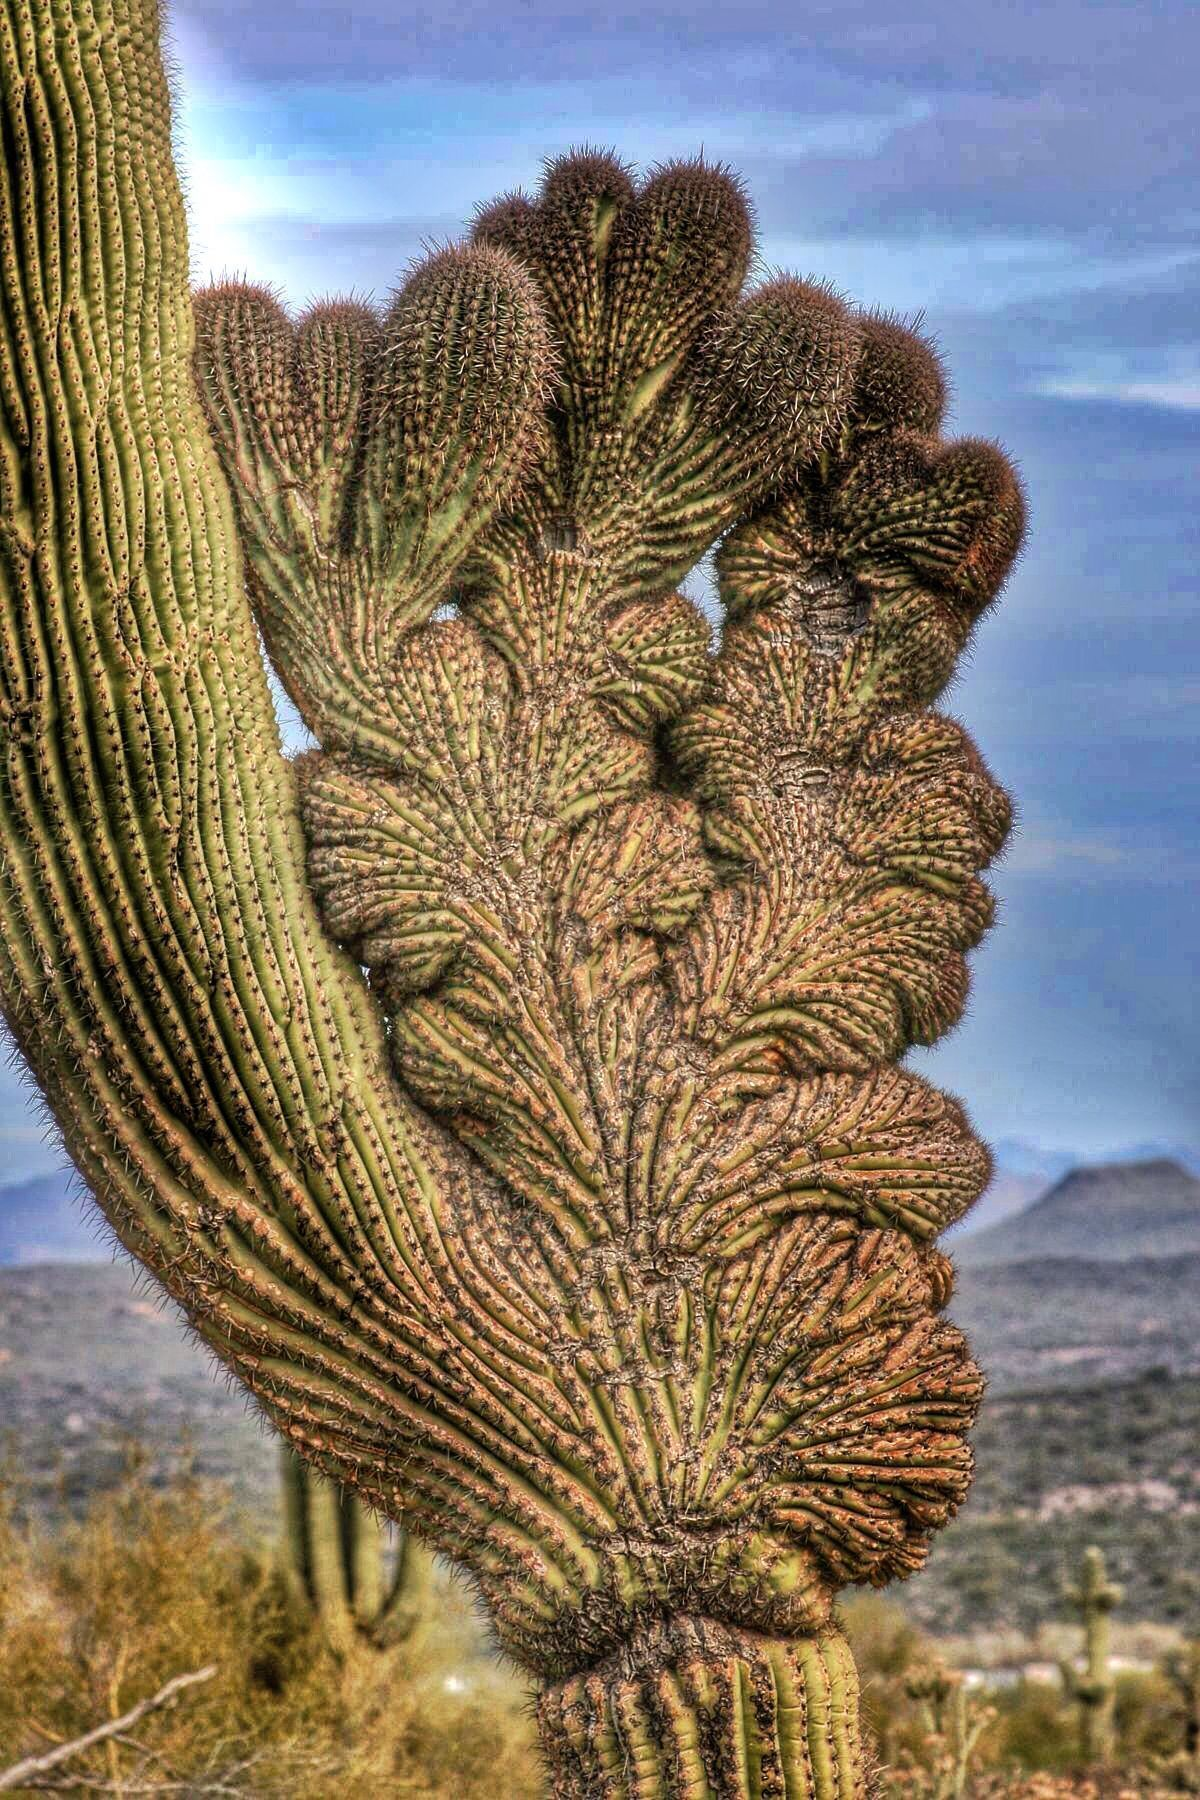 Crested Saguaro - Arizona Cactus #Cactusflower #arizonacactus Crested Saguaro - Arizona Cactus #Cactusflower #arizonacactus Crested Saguaro - Arizona Cactus #Cactusflower #arizonacactus Crested Saguaro - Arizona Cactus #Cactusflower #arizonacactus Crested Saguaro - Arizona Cactus #Cactusflower #arizonacactus Crested Saguaro - Arizona Cactus #Cactusflower #arizonacactus Crested Saguaro - Arizona Cactus #Cactusflower #arizonacactus Crested Saguaro - Arizona Cactus #Cactusflower #arizonacactus Cres #arizonacactus